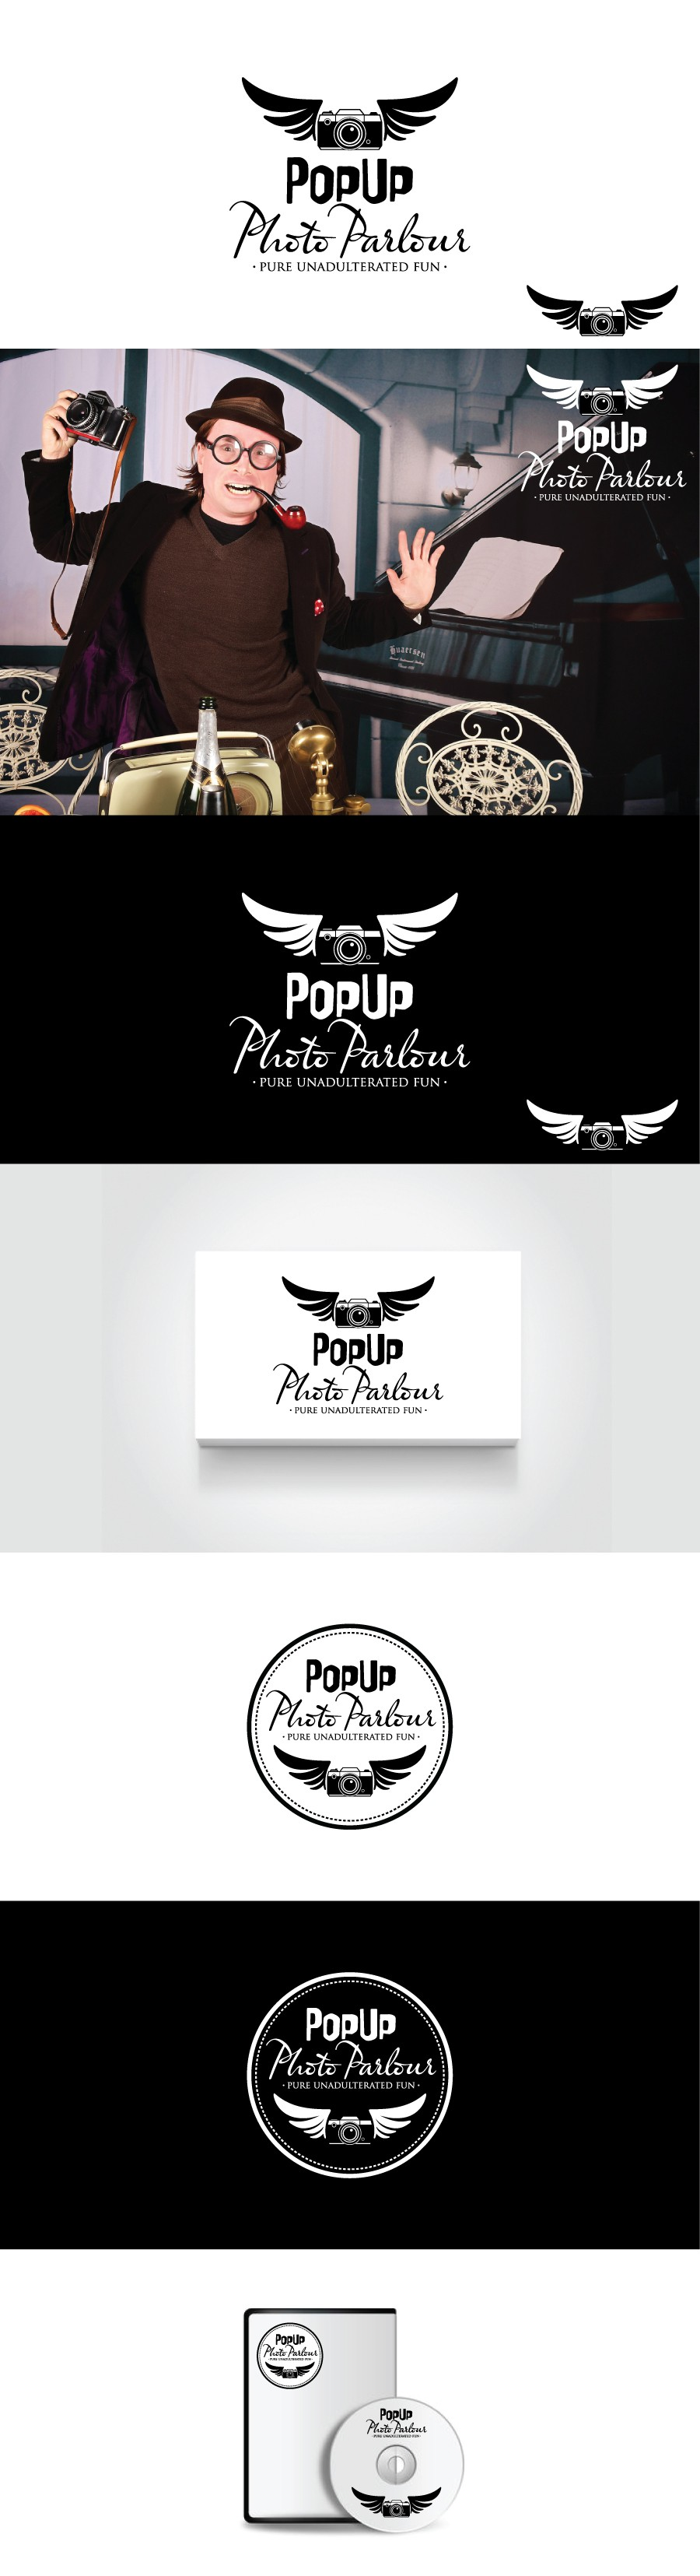 An eccentric English company with a fab clients list seeking a quirky stylish logo.